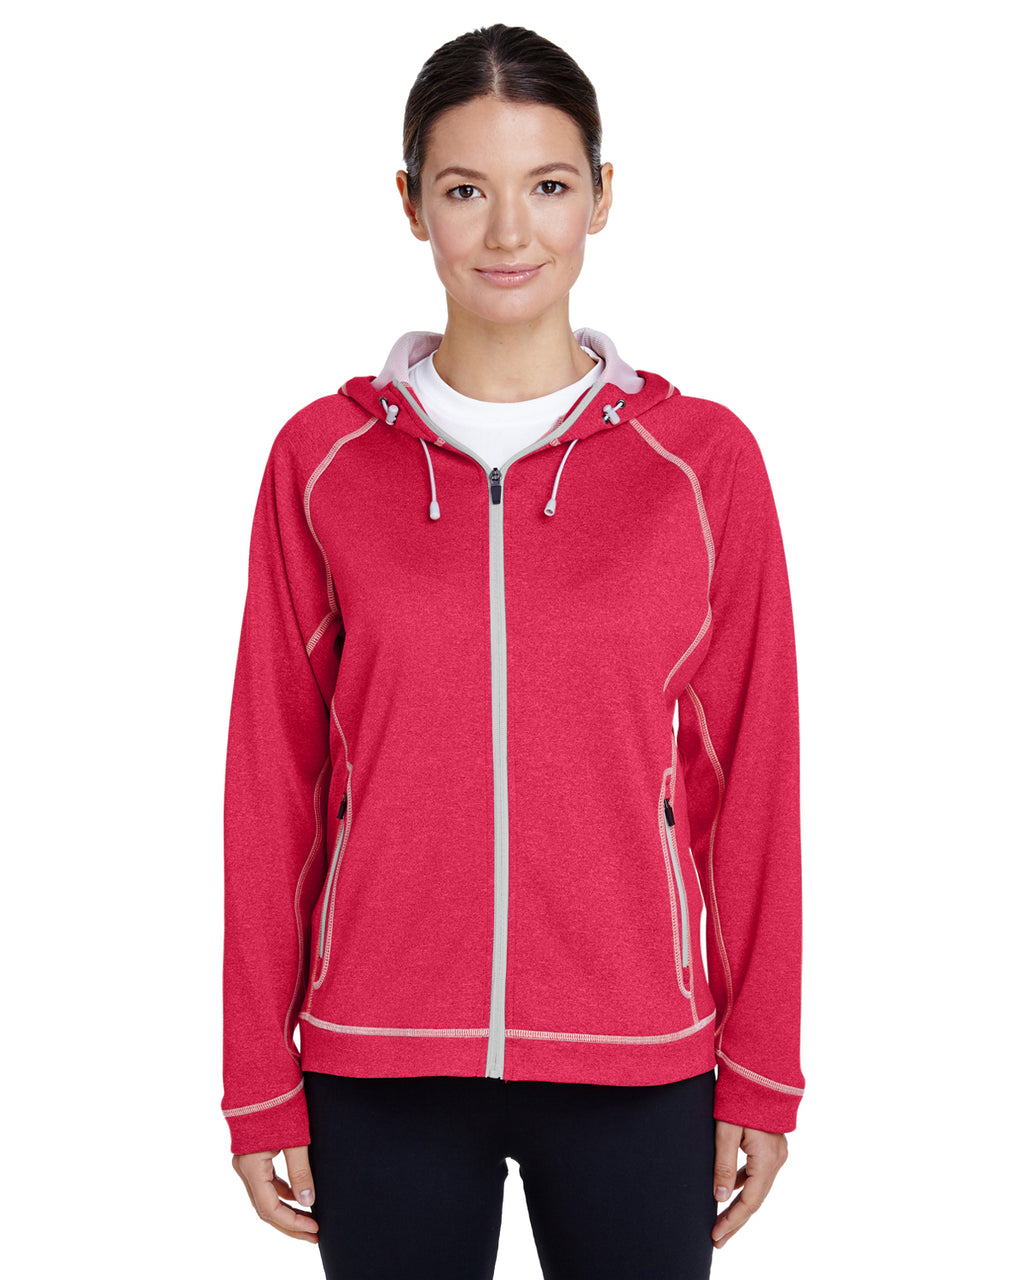 TT38W - Ladies' Excel Mélange Performance Fleece Jacket